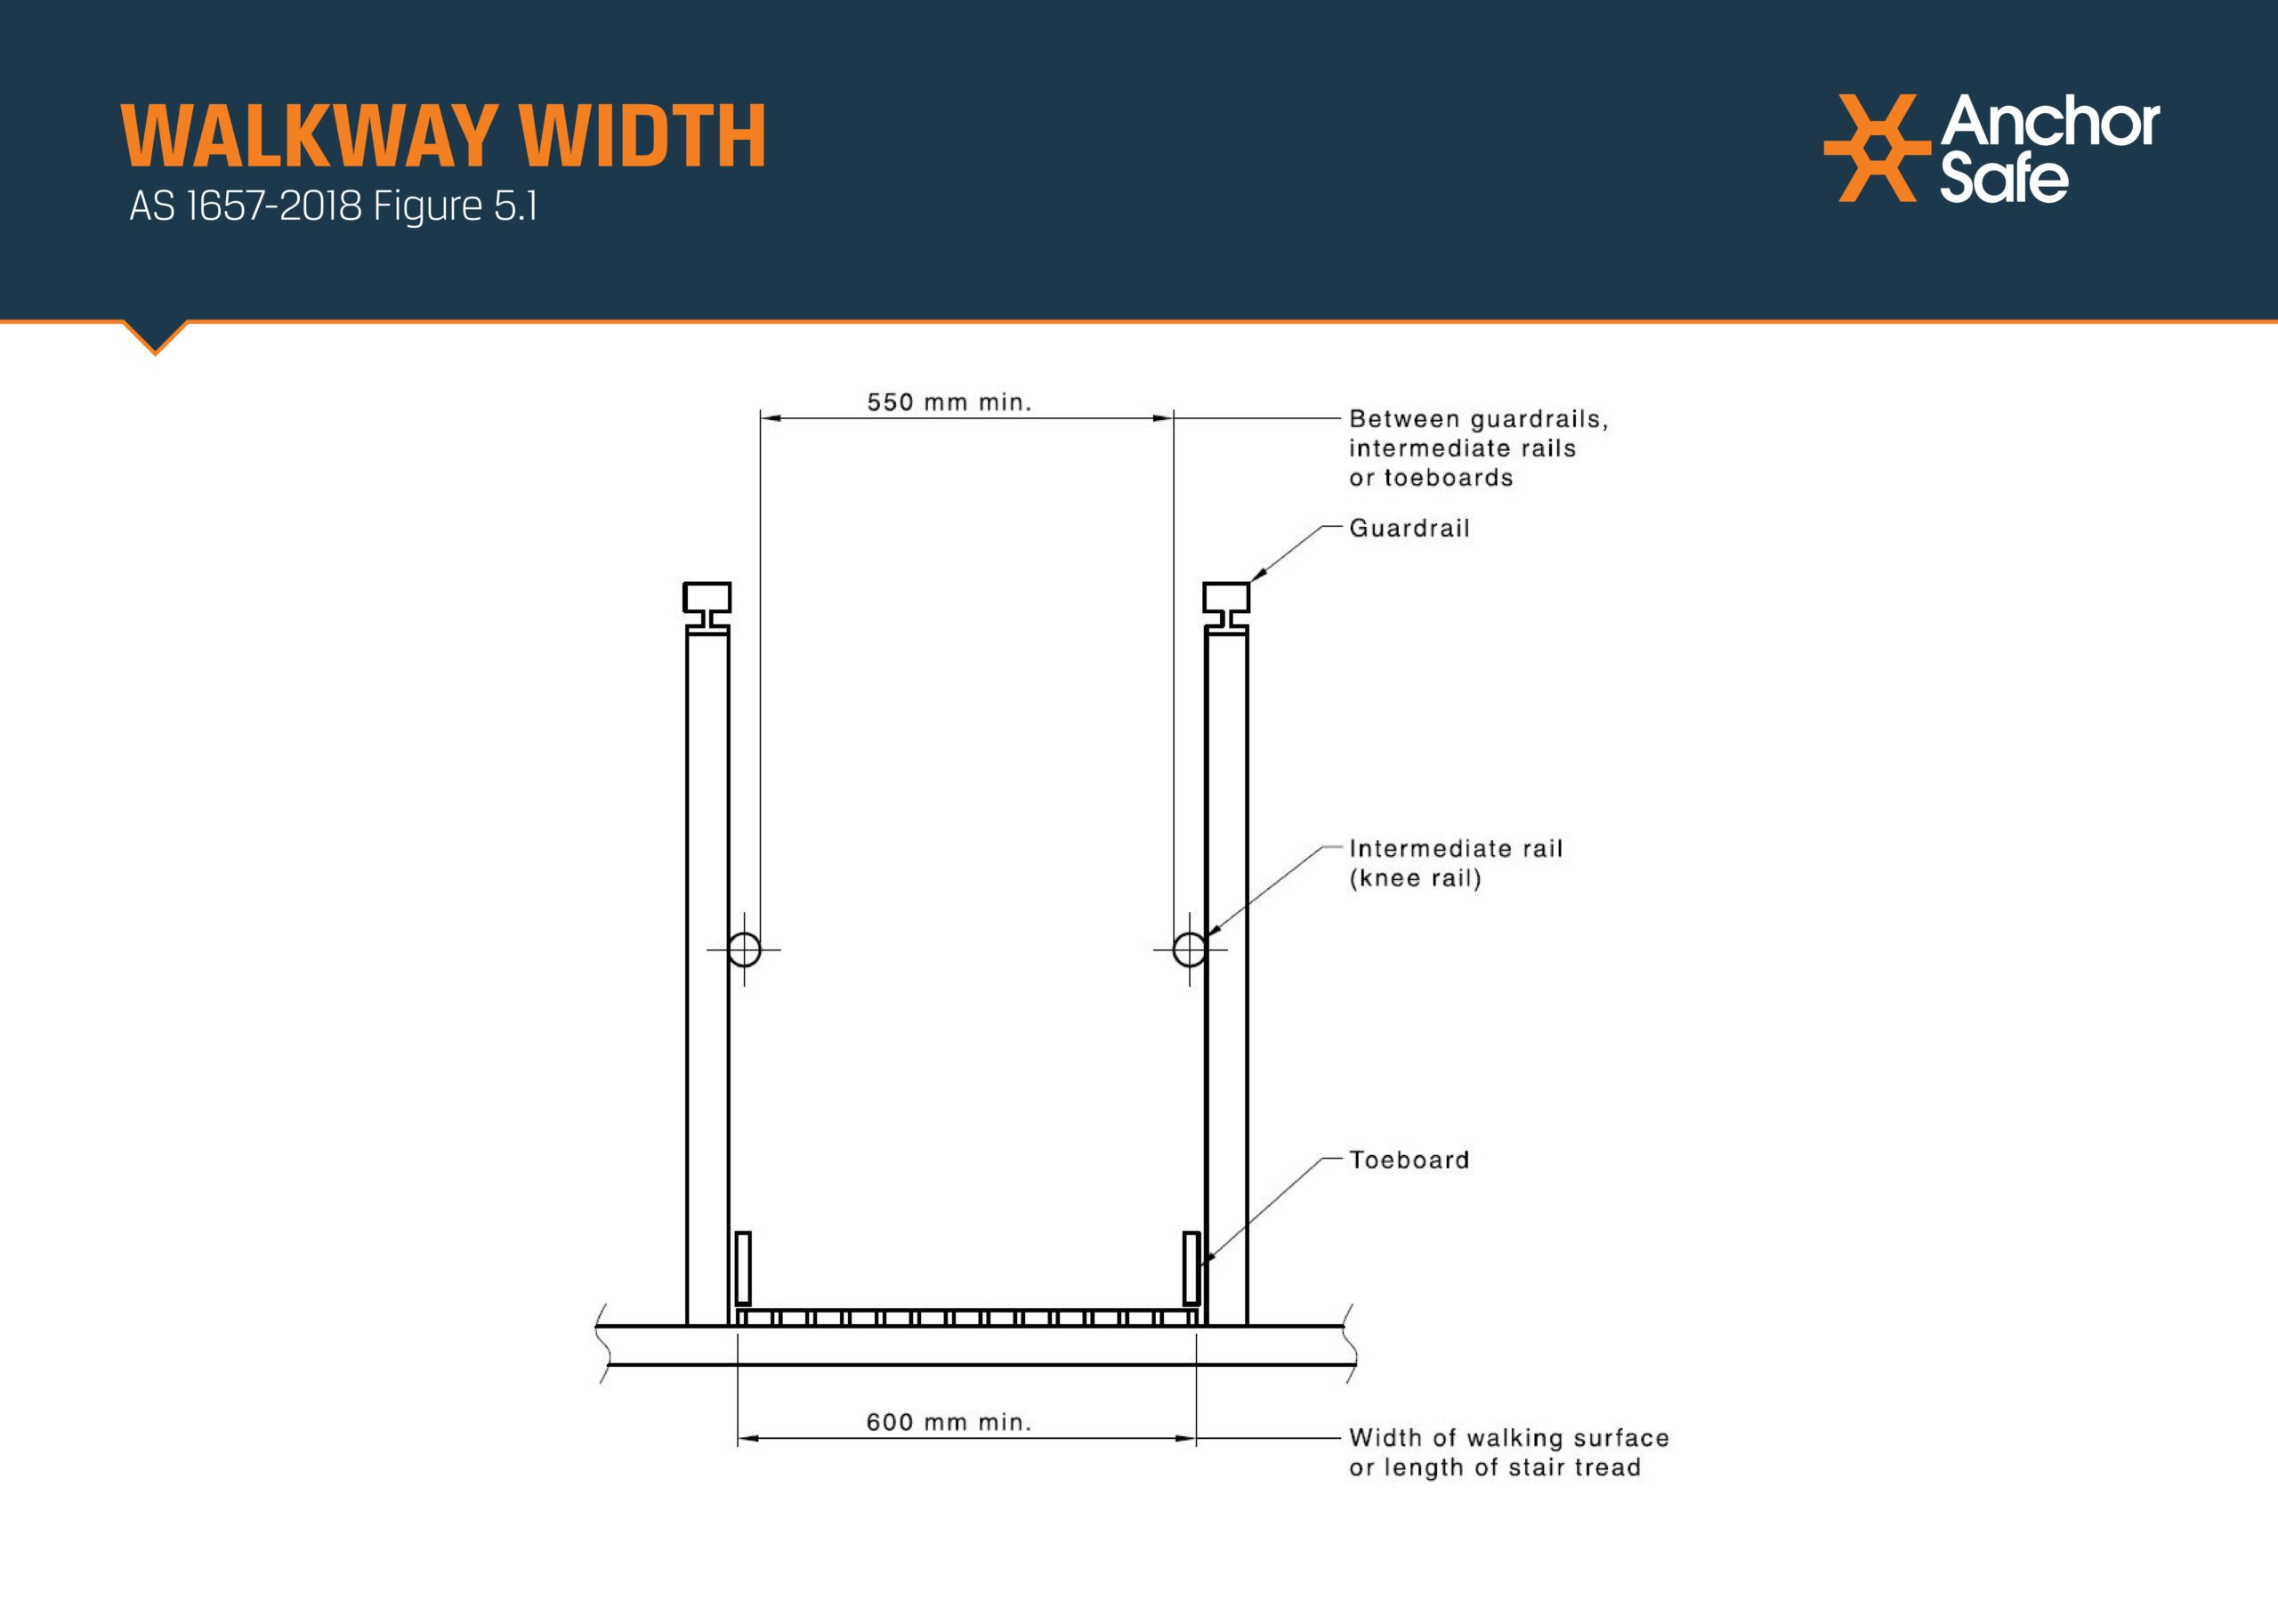 diagram depicting specified width and height for walkways and guardrails in order to be compliant with Australian regulations